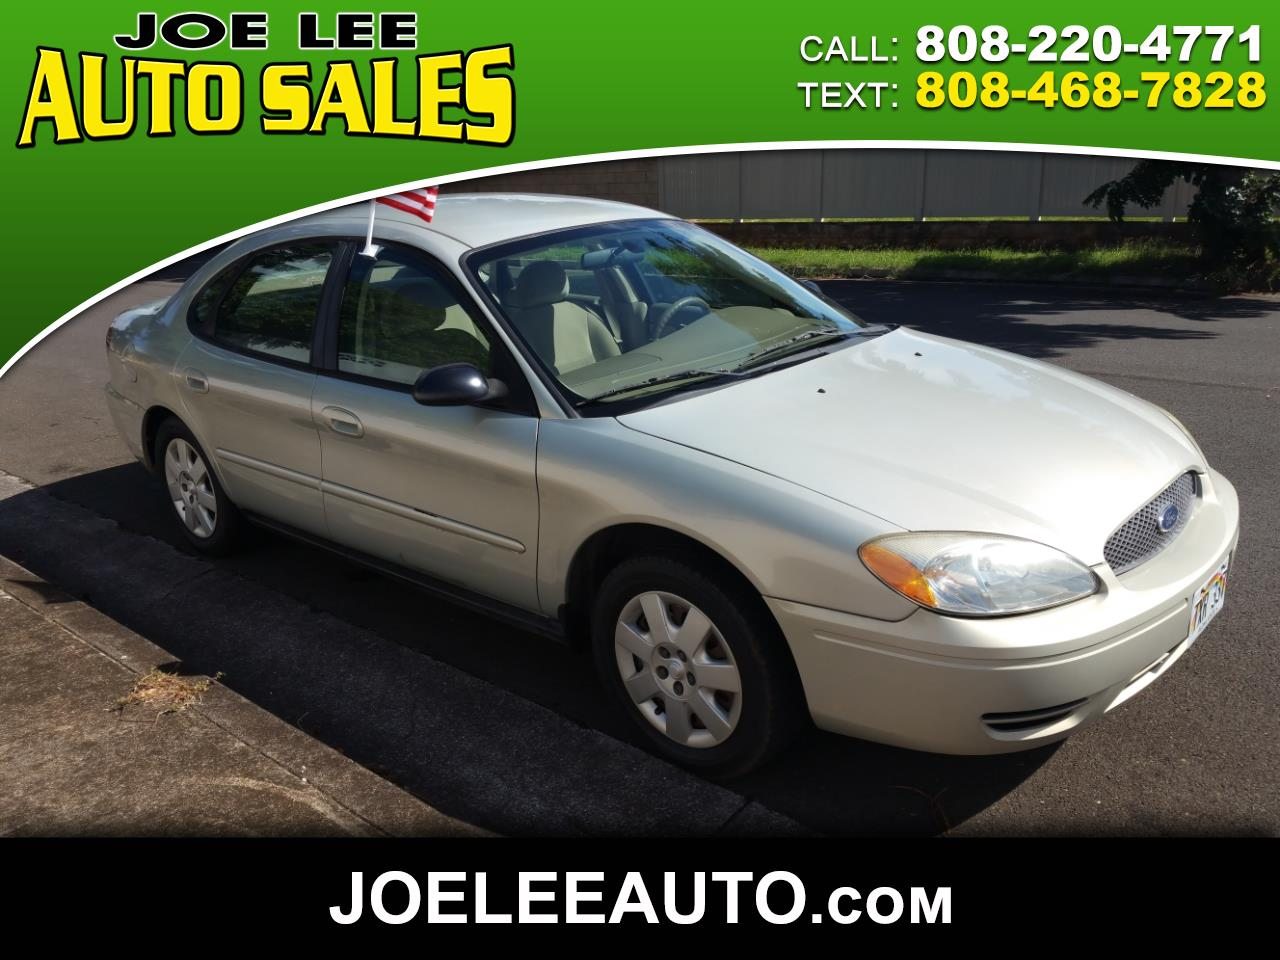 Ford Taurus 4dr Sdn SE 2005